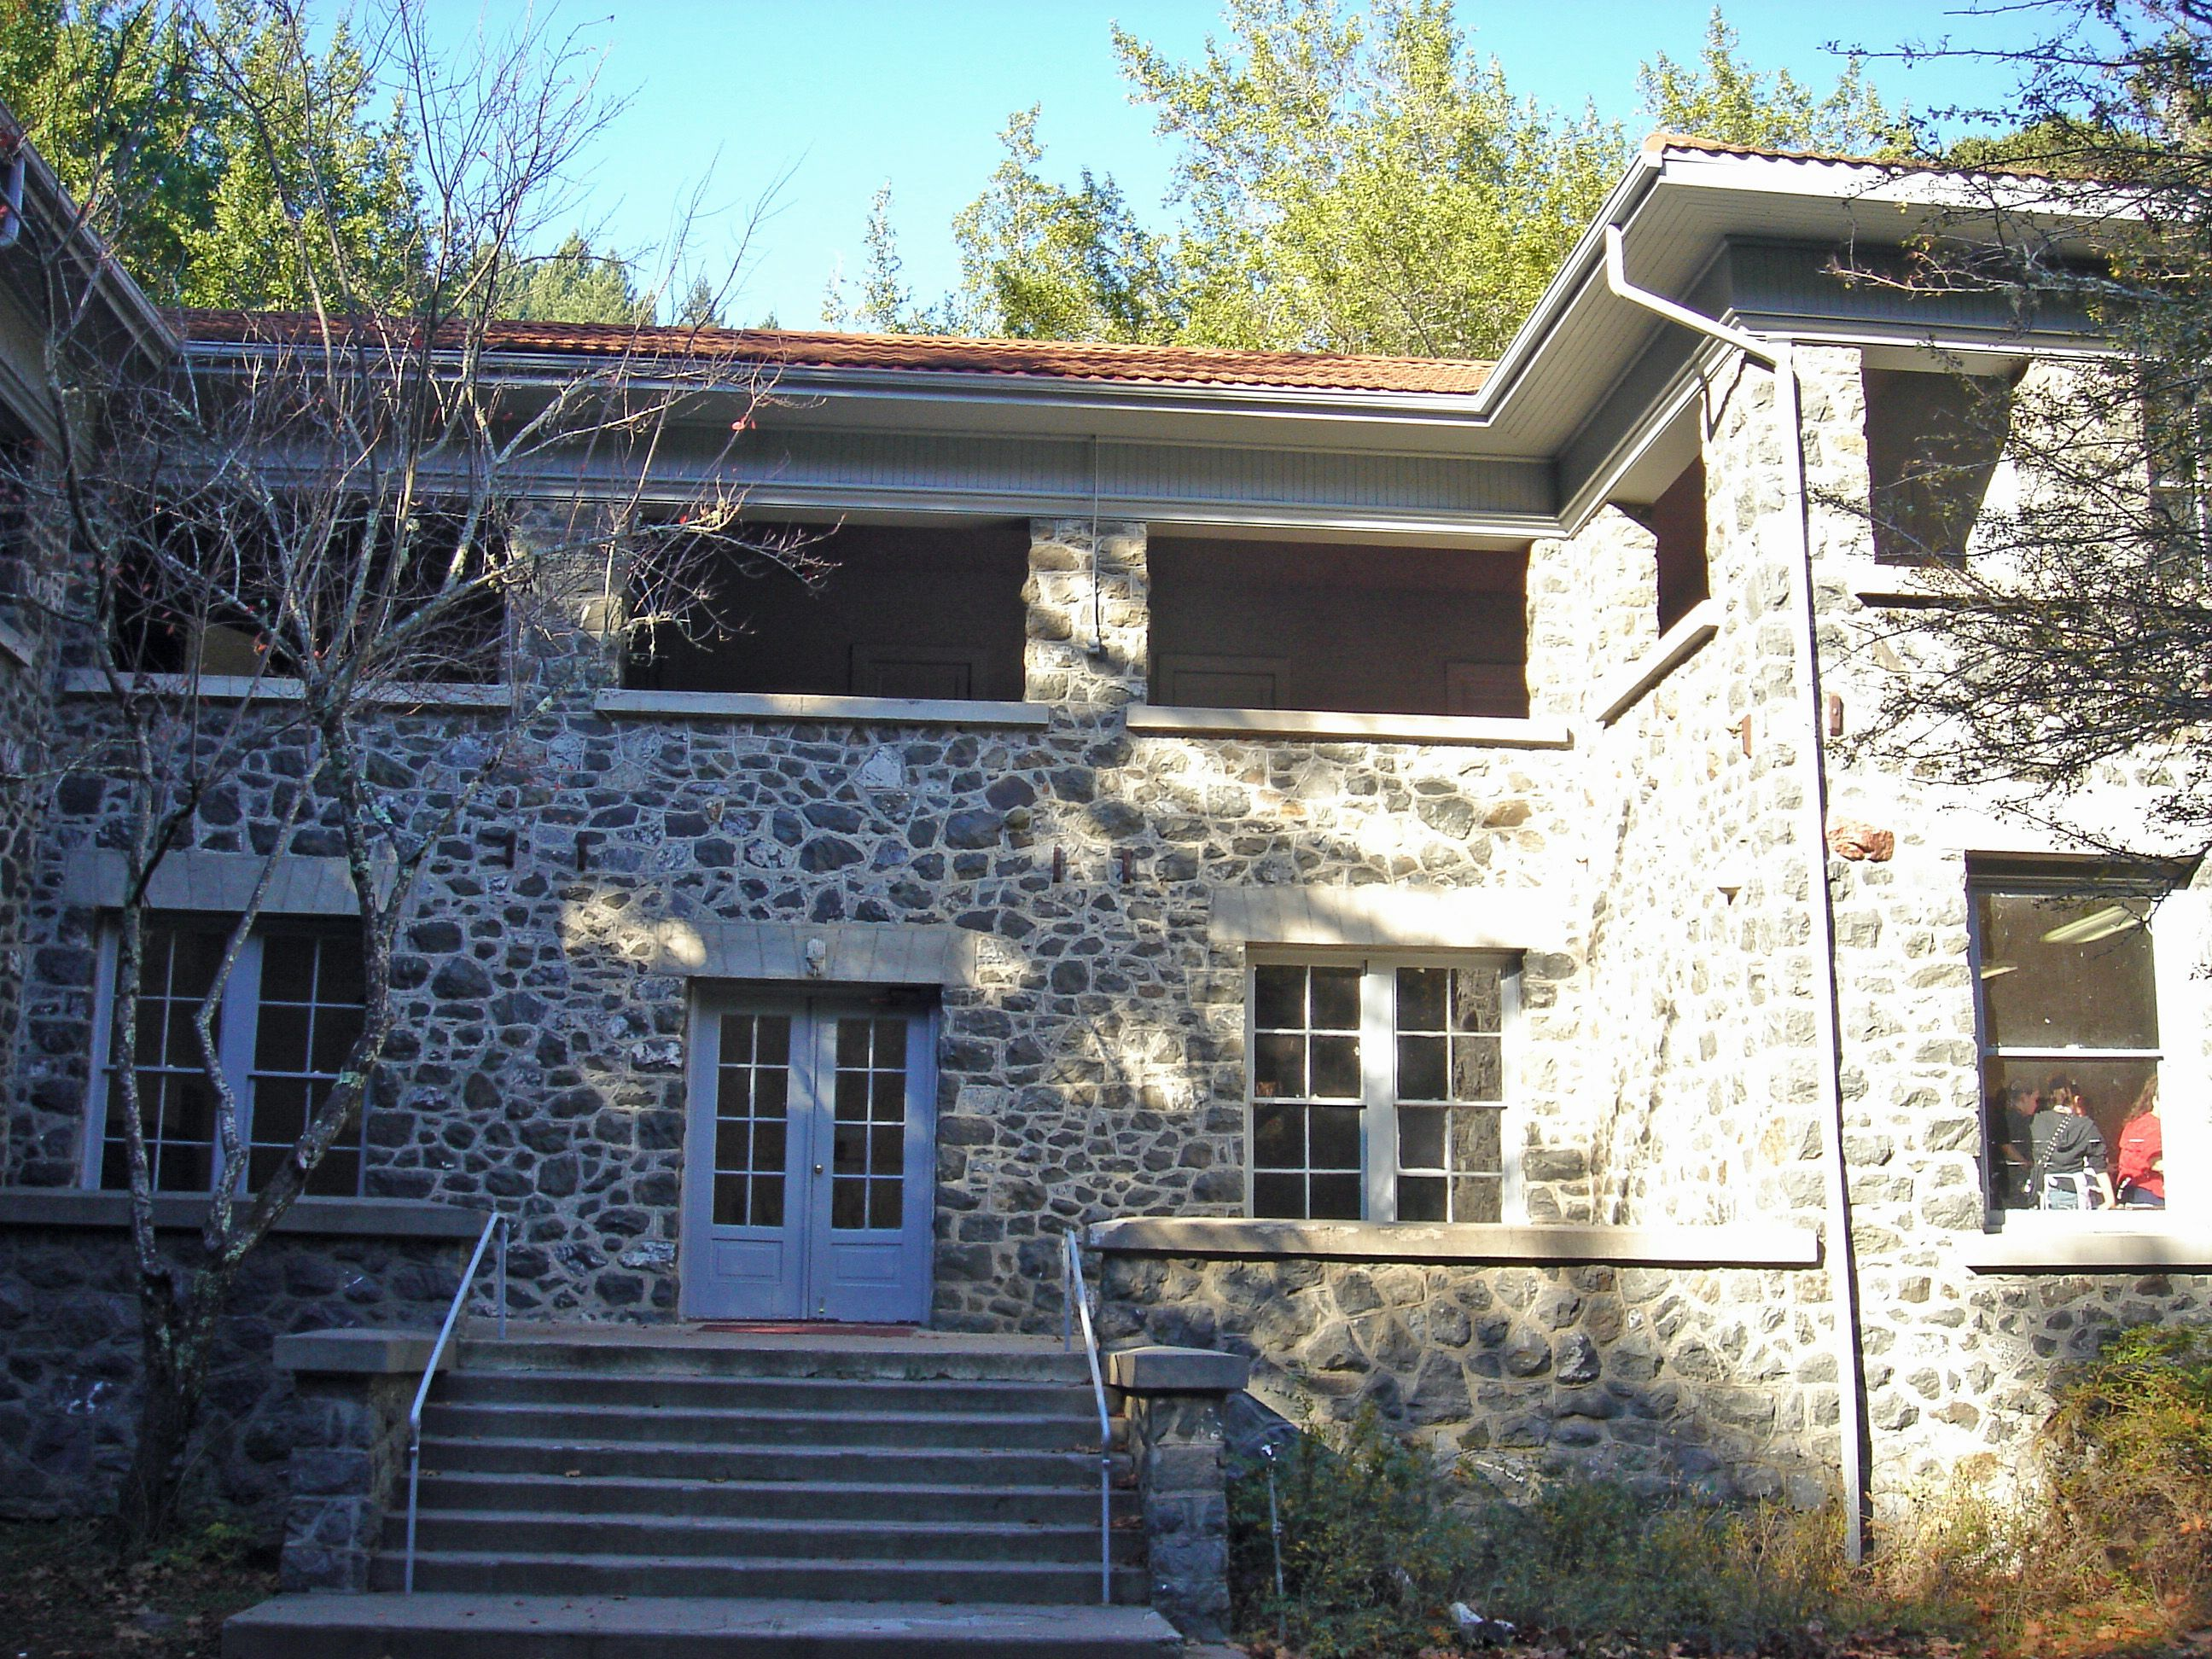 I went to camp here, and just found out it was haunted! Stone house at camp bothin